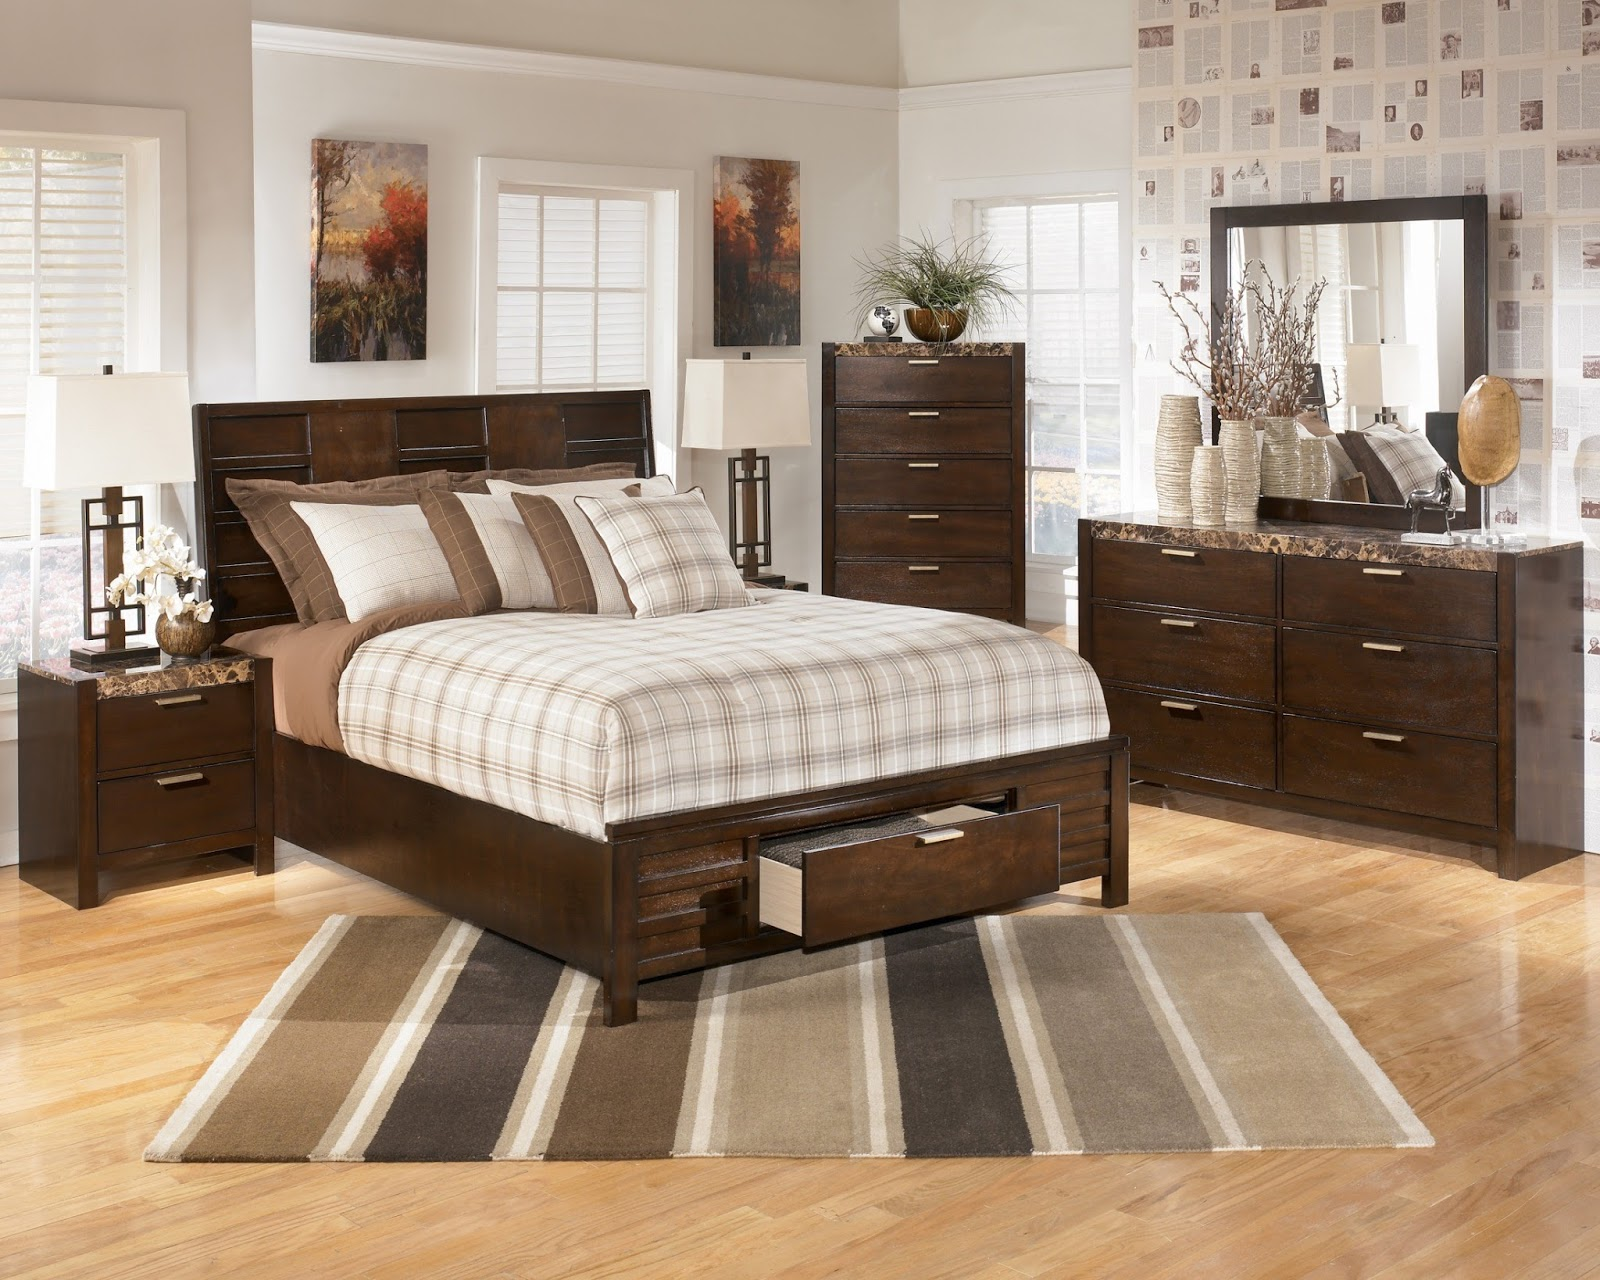 Get Rid Of That Clutter Chaviva 39 S: how to arrange bedroom furniture